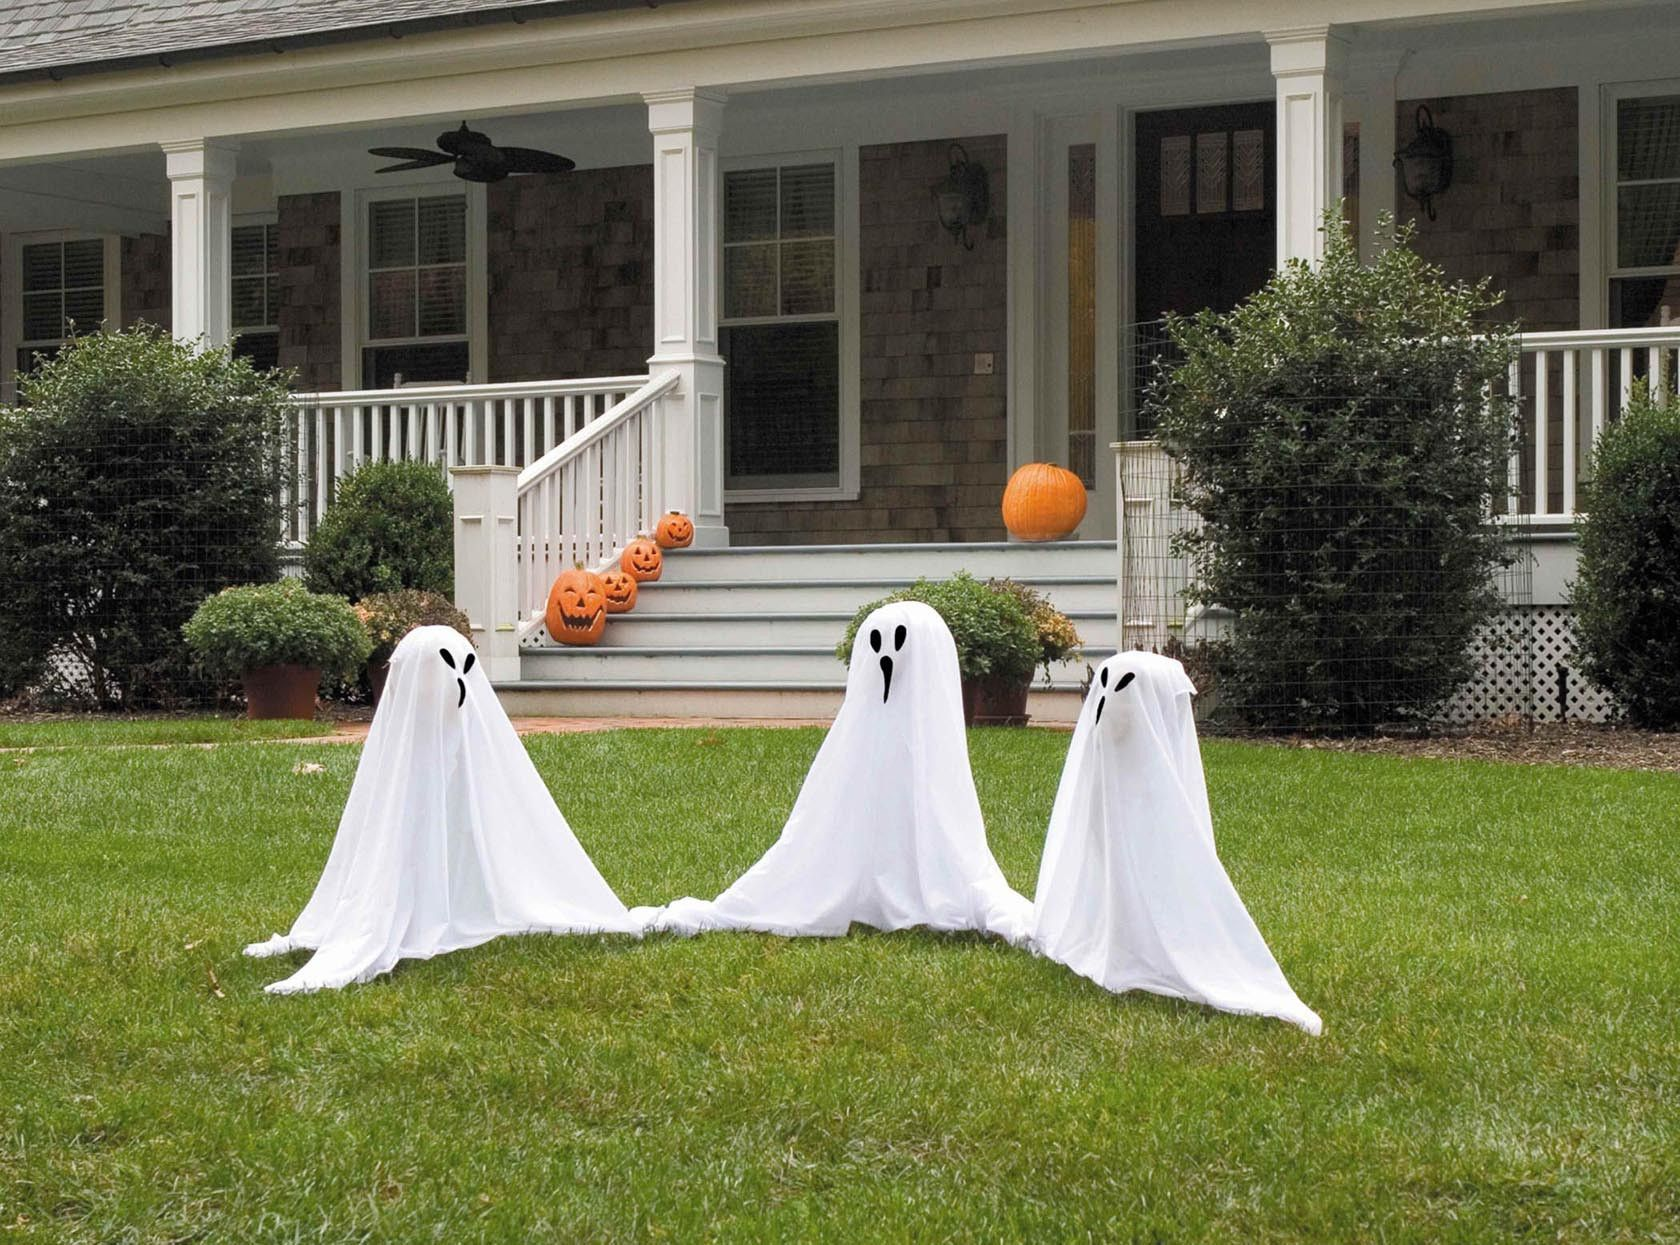 Ghostly Group Outdoor Halloween Prop Decoration 3 Per Set is part of Front lawn Decorations - Your yard can be the scene of the haunting with this ghostly group set  This lawn decoration set includes 3 lawn ghosts with easytoassemble stakes for quick setup  The ghost is composed of a foam head, with a white cloth attached over the top of the head  A black ghost face is printed on the front  Just plant them in your yard and watch the terror unfold!